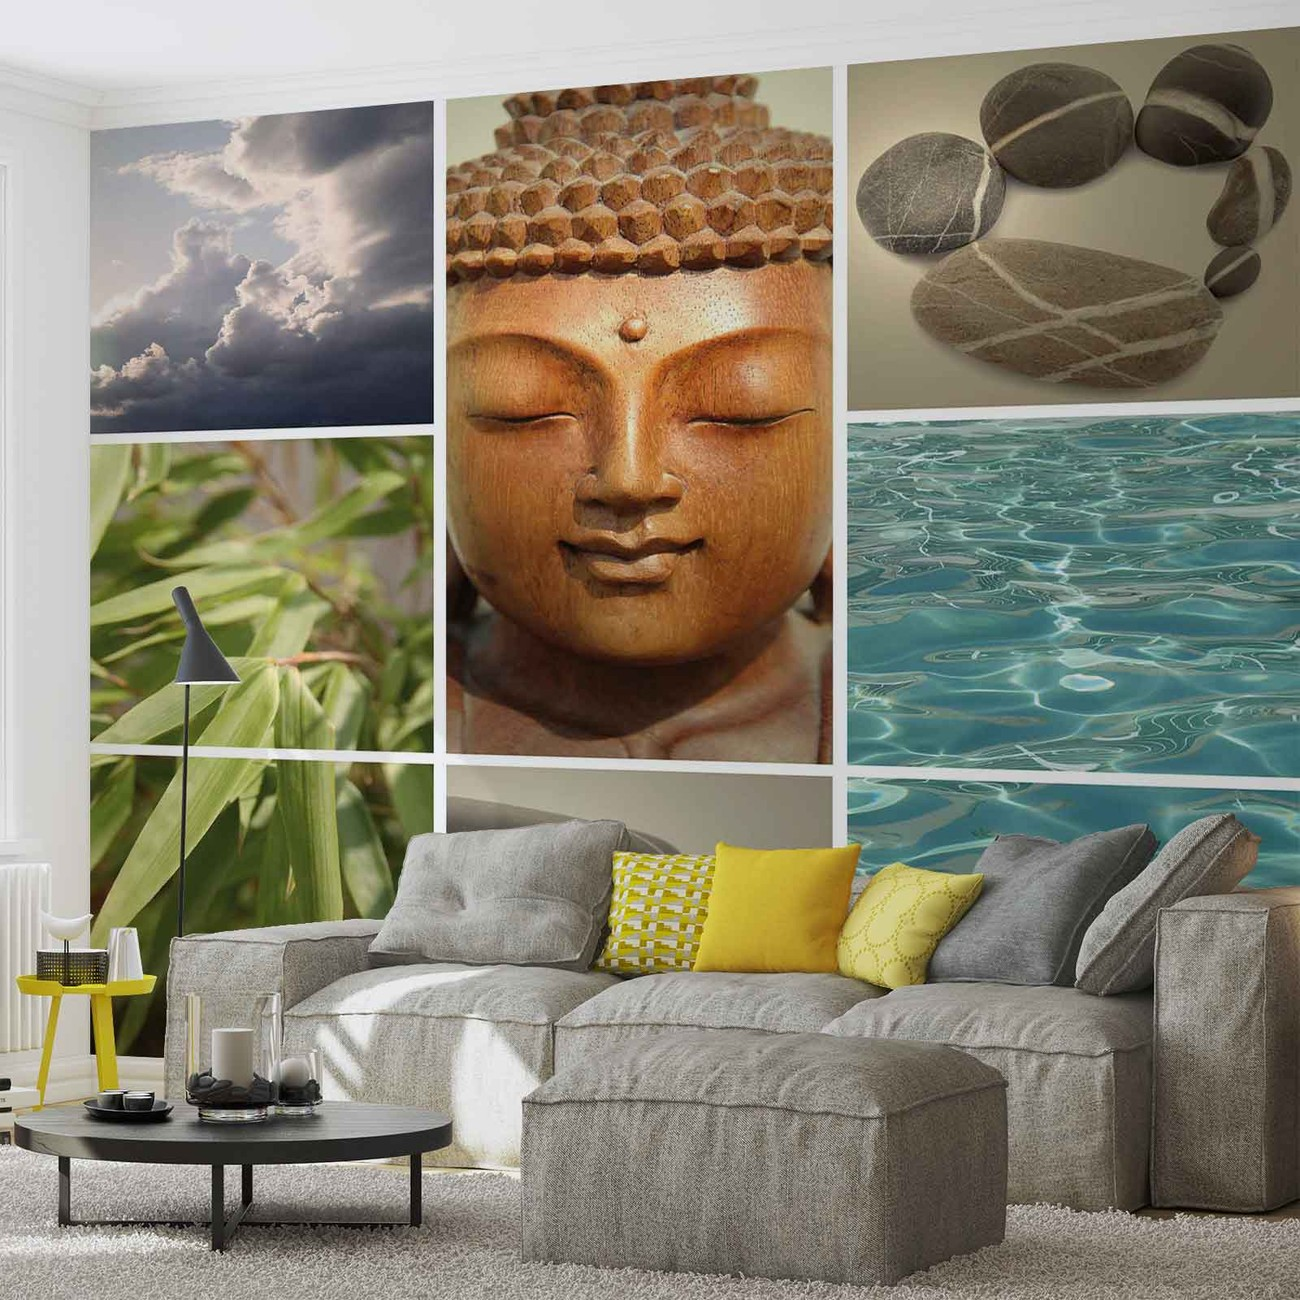 zen calming scene wall paper mural buy at europosters. Black Bedroom Furniture Sets. Home Design Ideas